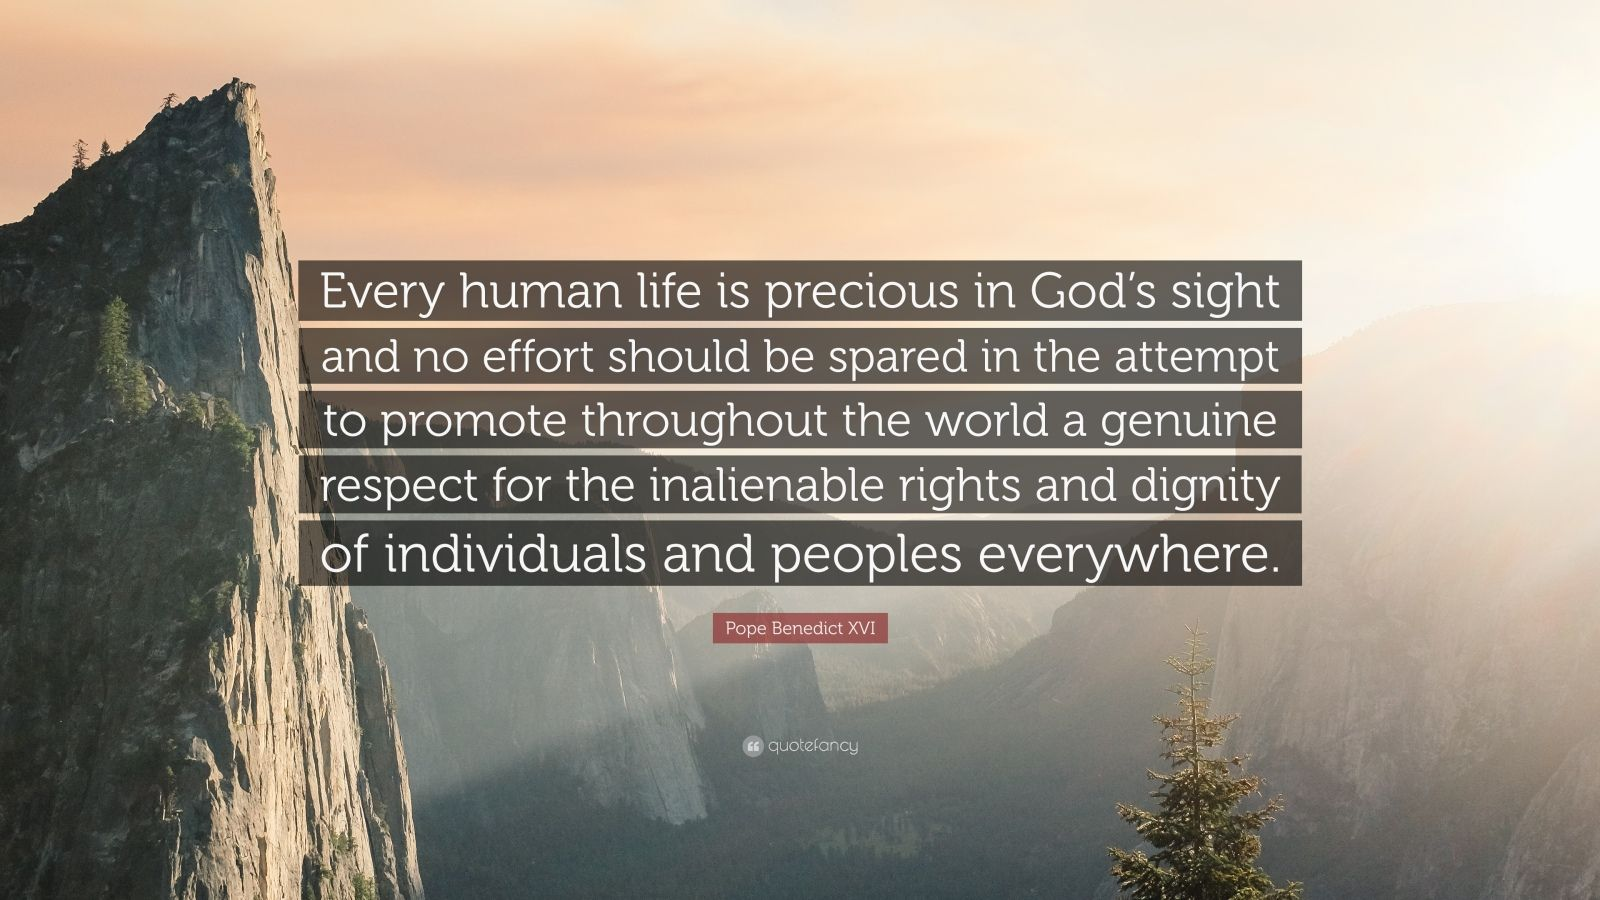 """Pope Benedict XVI Quote: """"Every human life is precious in God's sight and no effort should be spared in the attempt to promote throughout the world a genuine respect for the inalienable rights and dignity of individuals and peoples everywhere."""""""